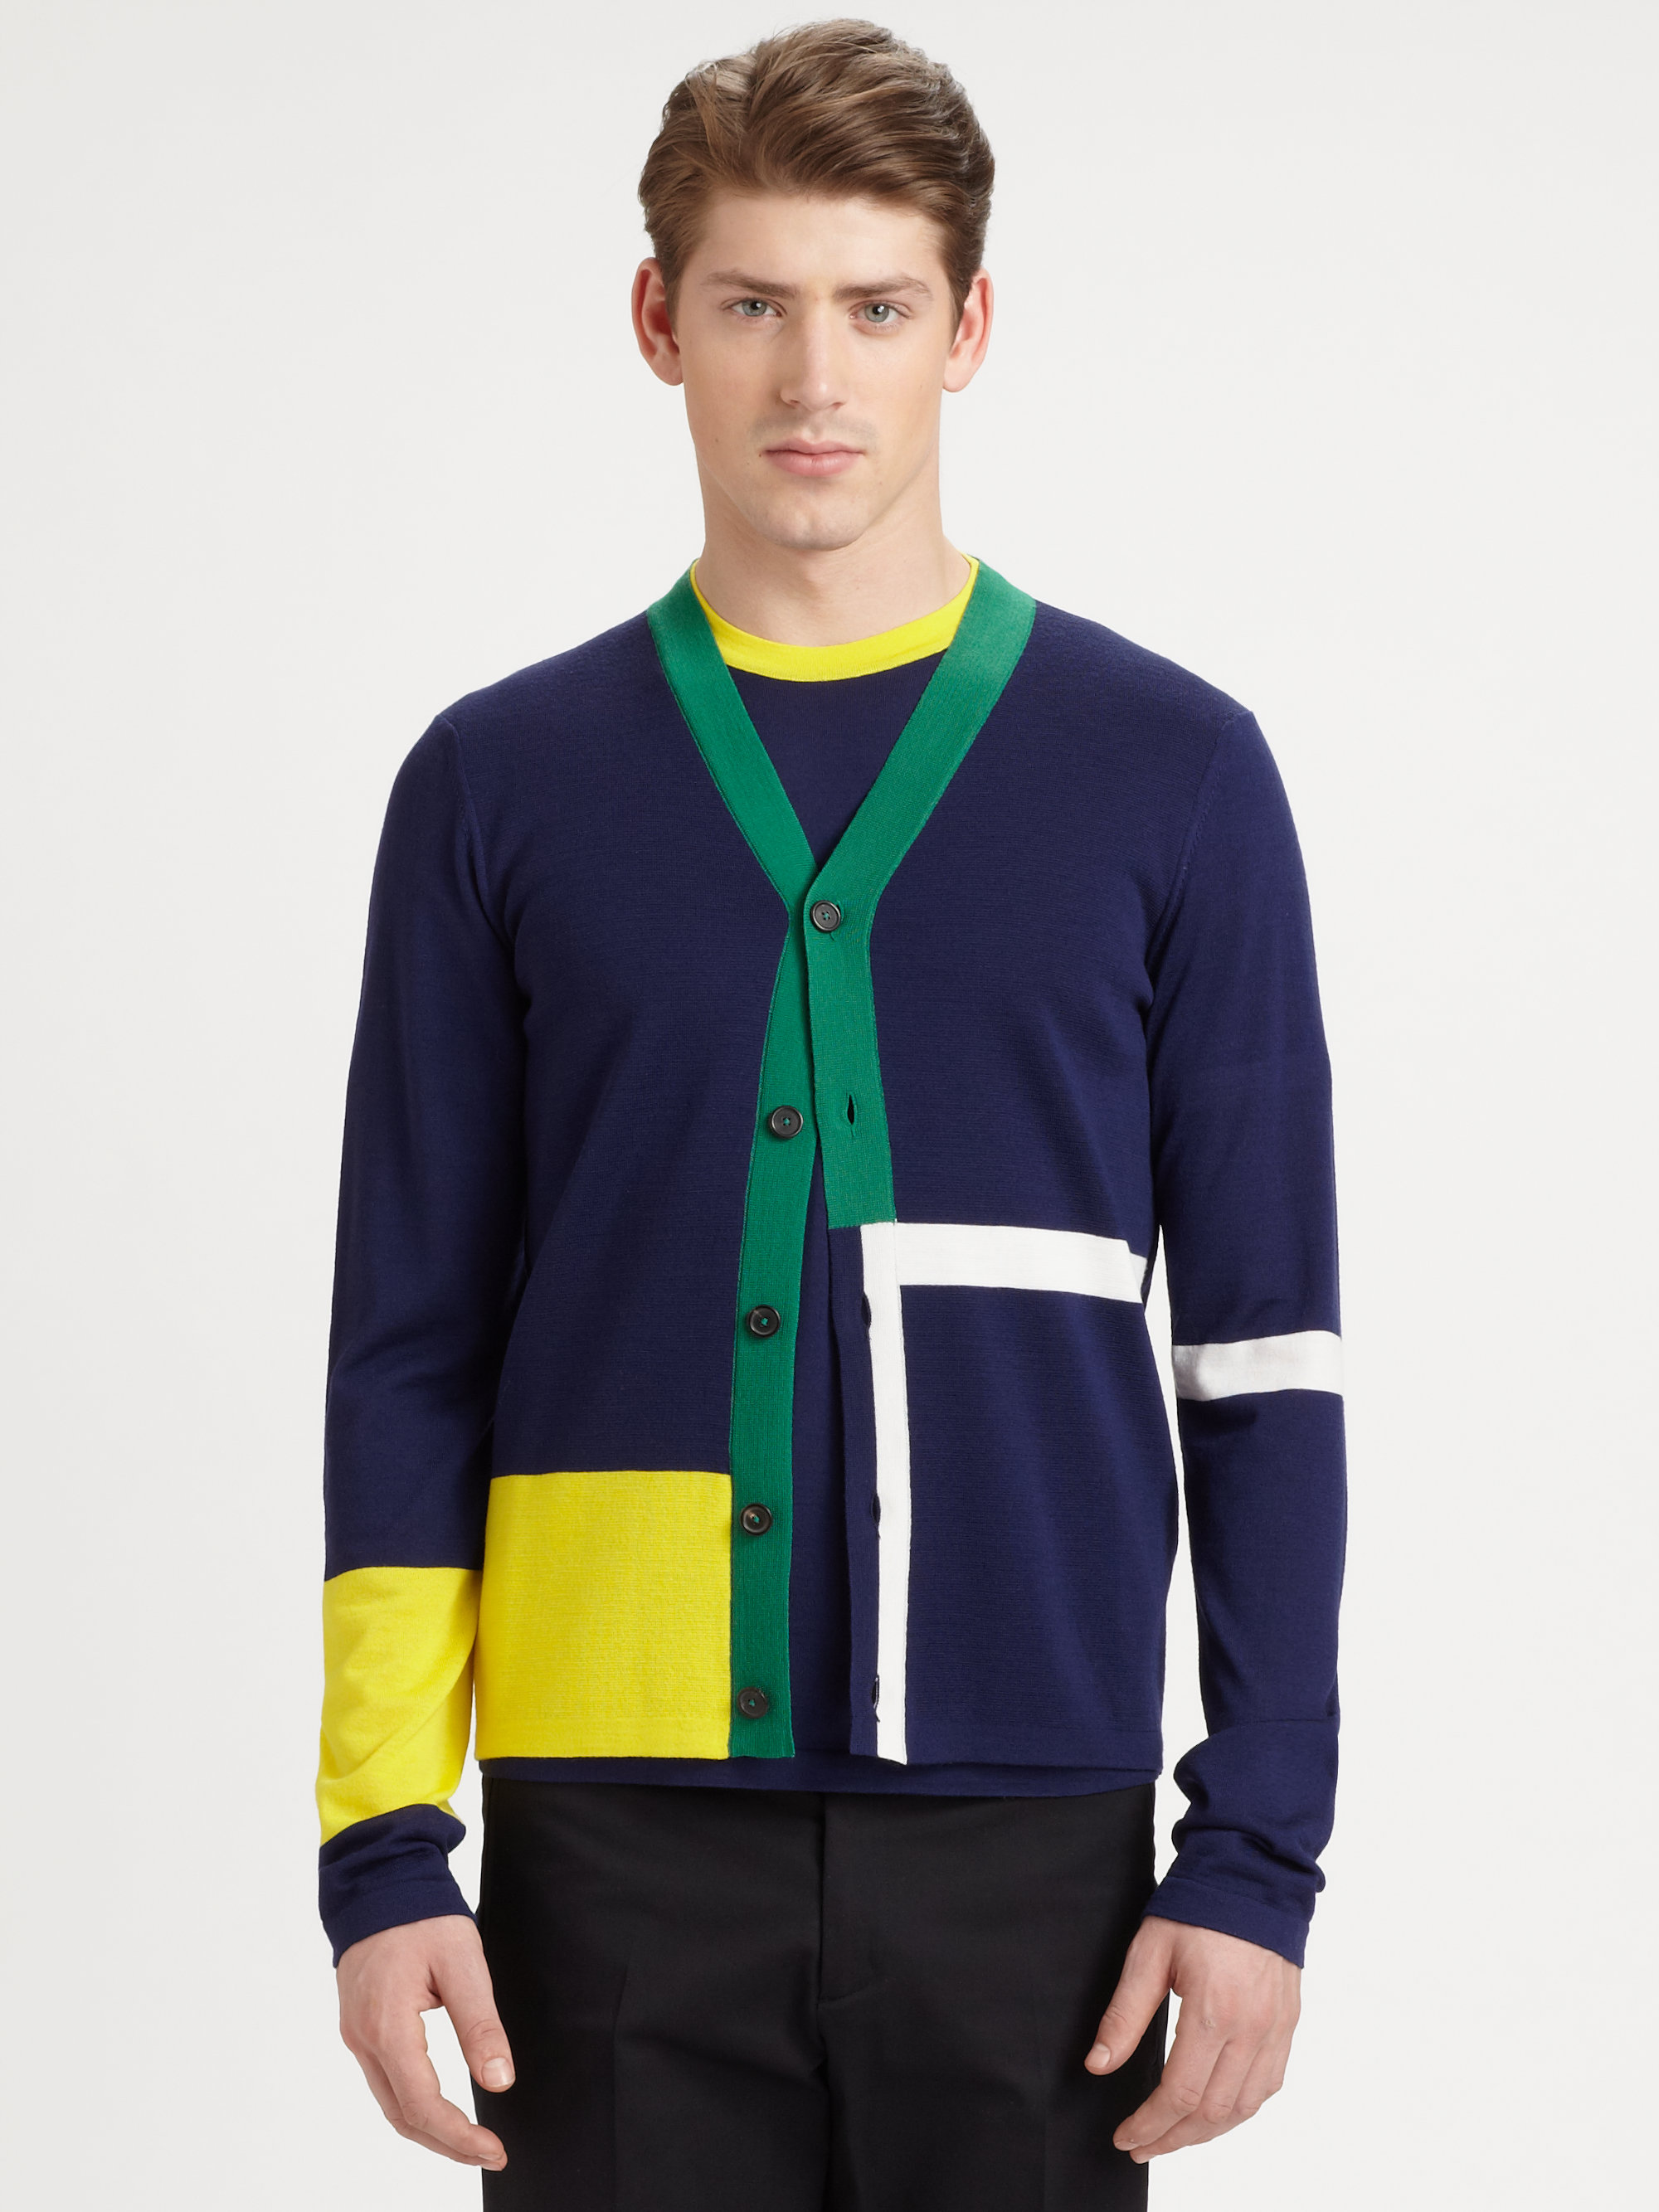 jil sander colorblock cardigan in blue for men blue multi. Black Bedroom Furniture Sets. Home Design Ideas